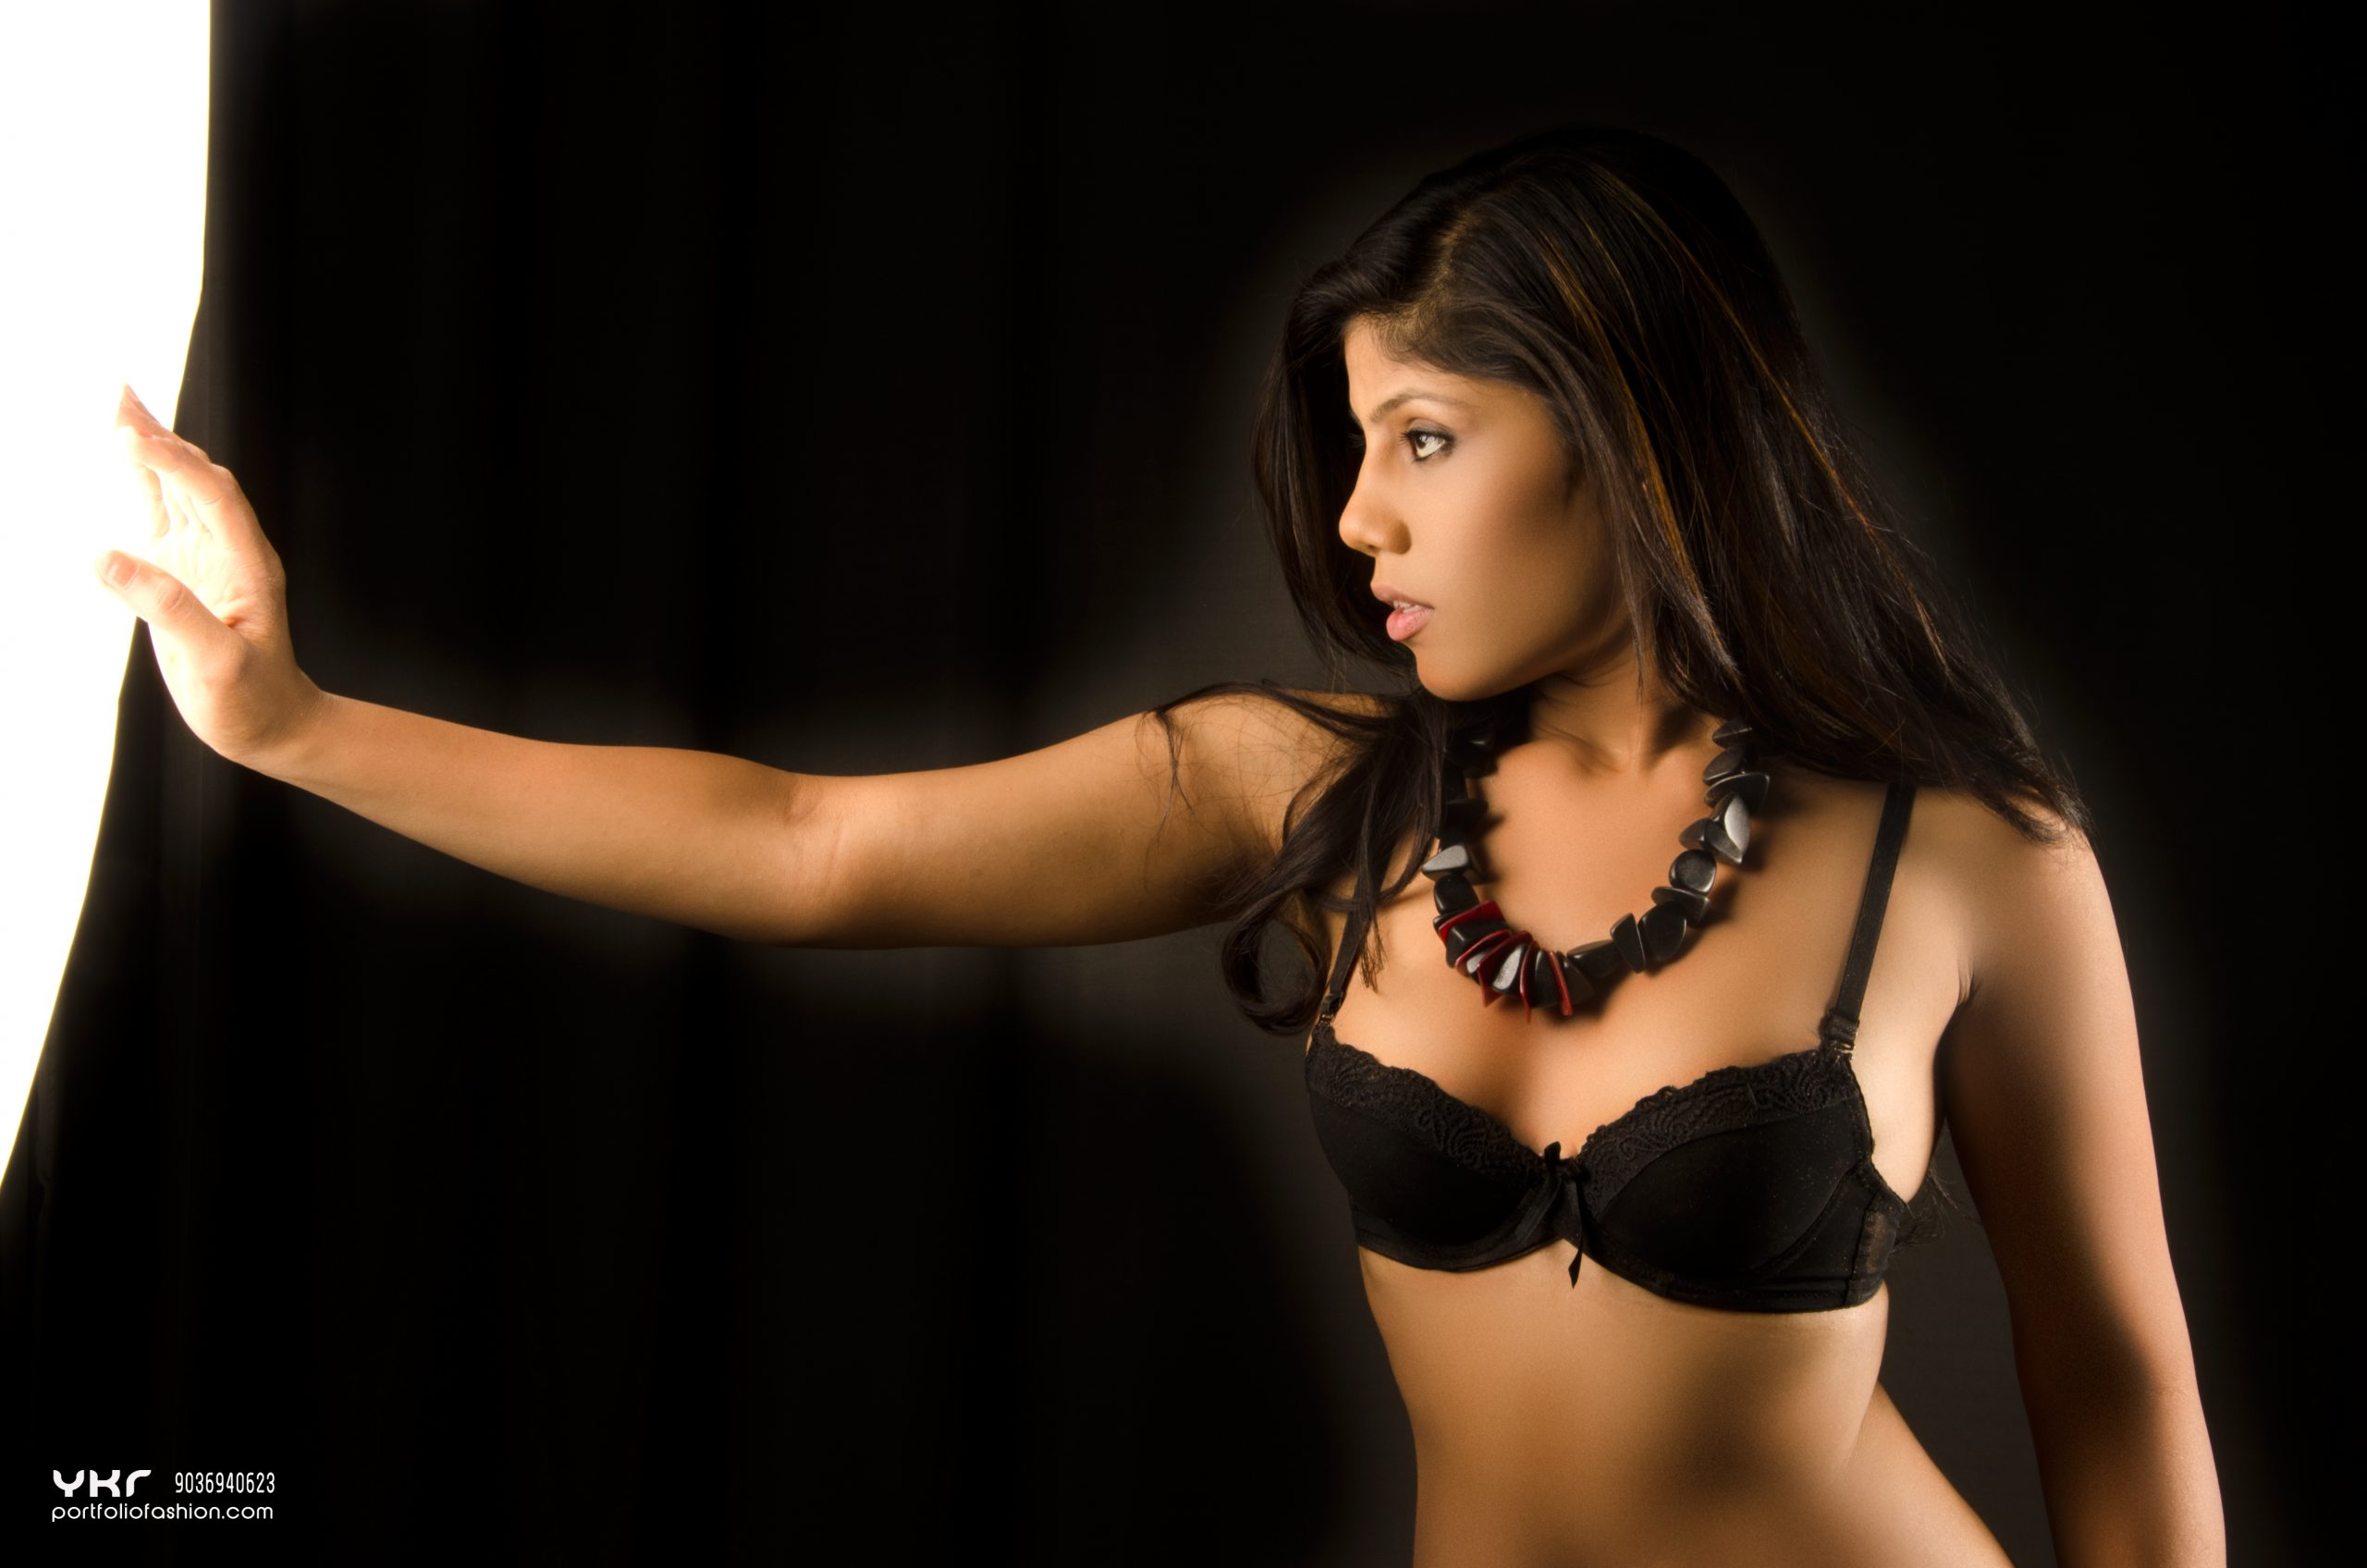 Bikini Photographer in Bangalore